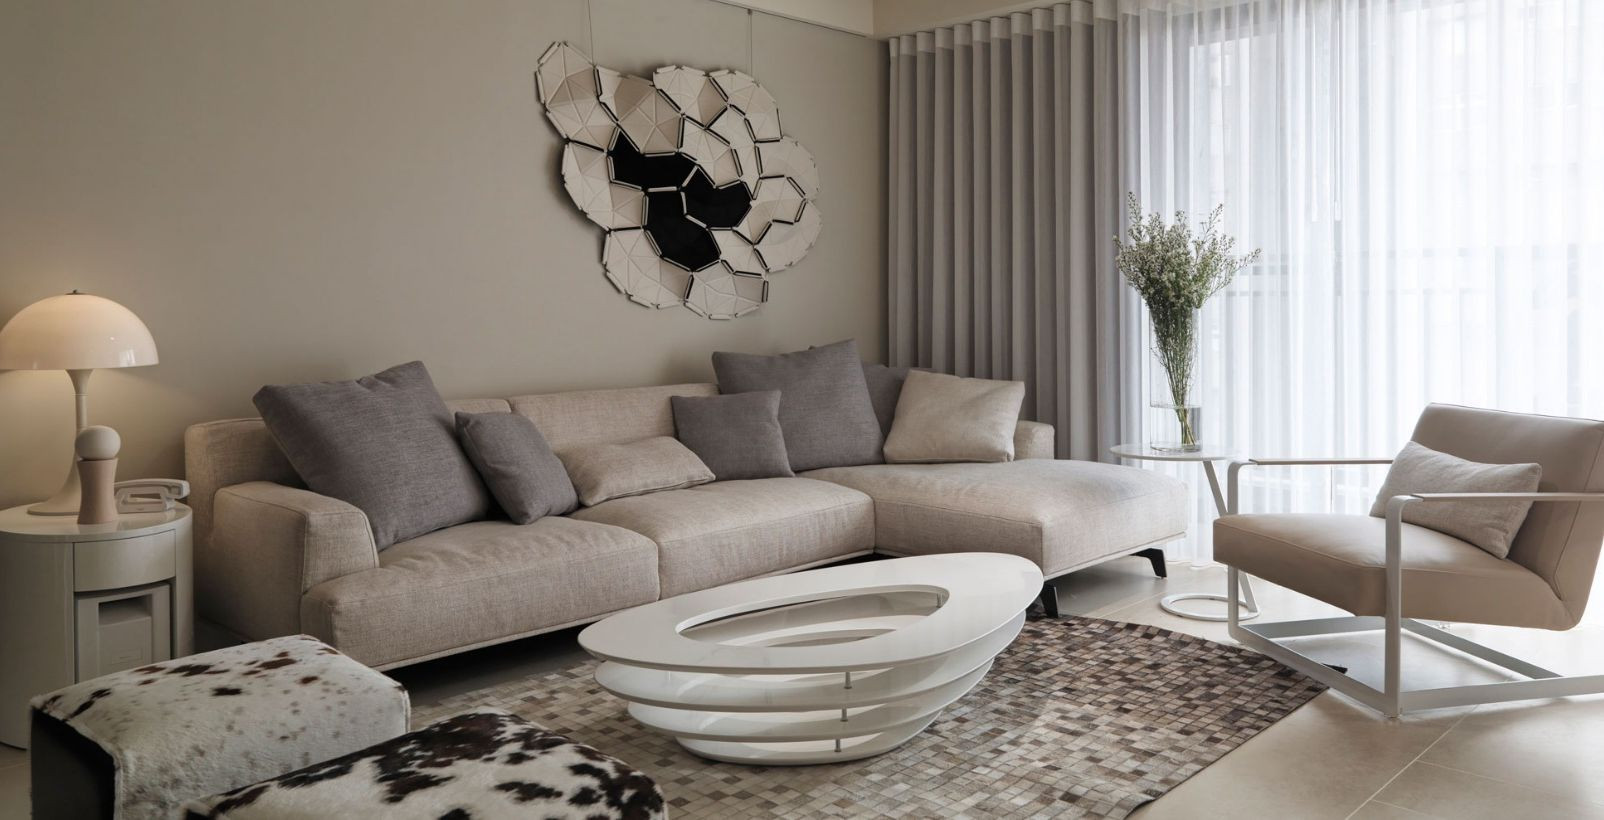 Best ideas about Living Room Color Ideas . Save or Pin Inspiring The Living Room Color Ideas MidCityEast Now.